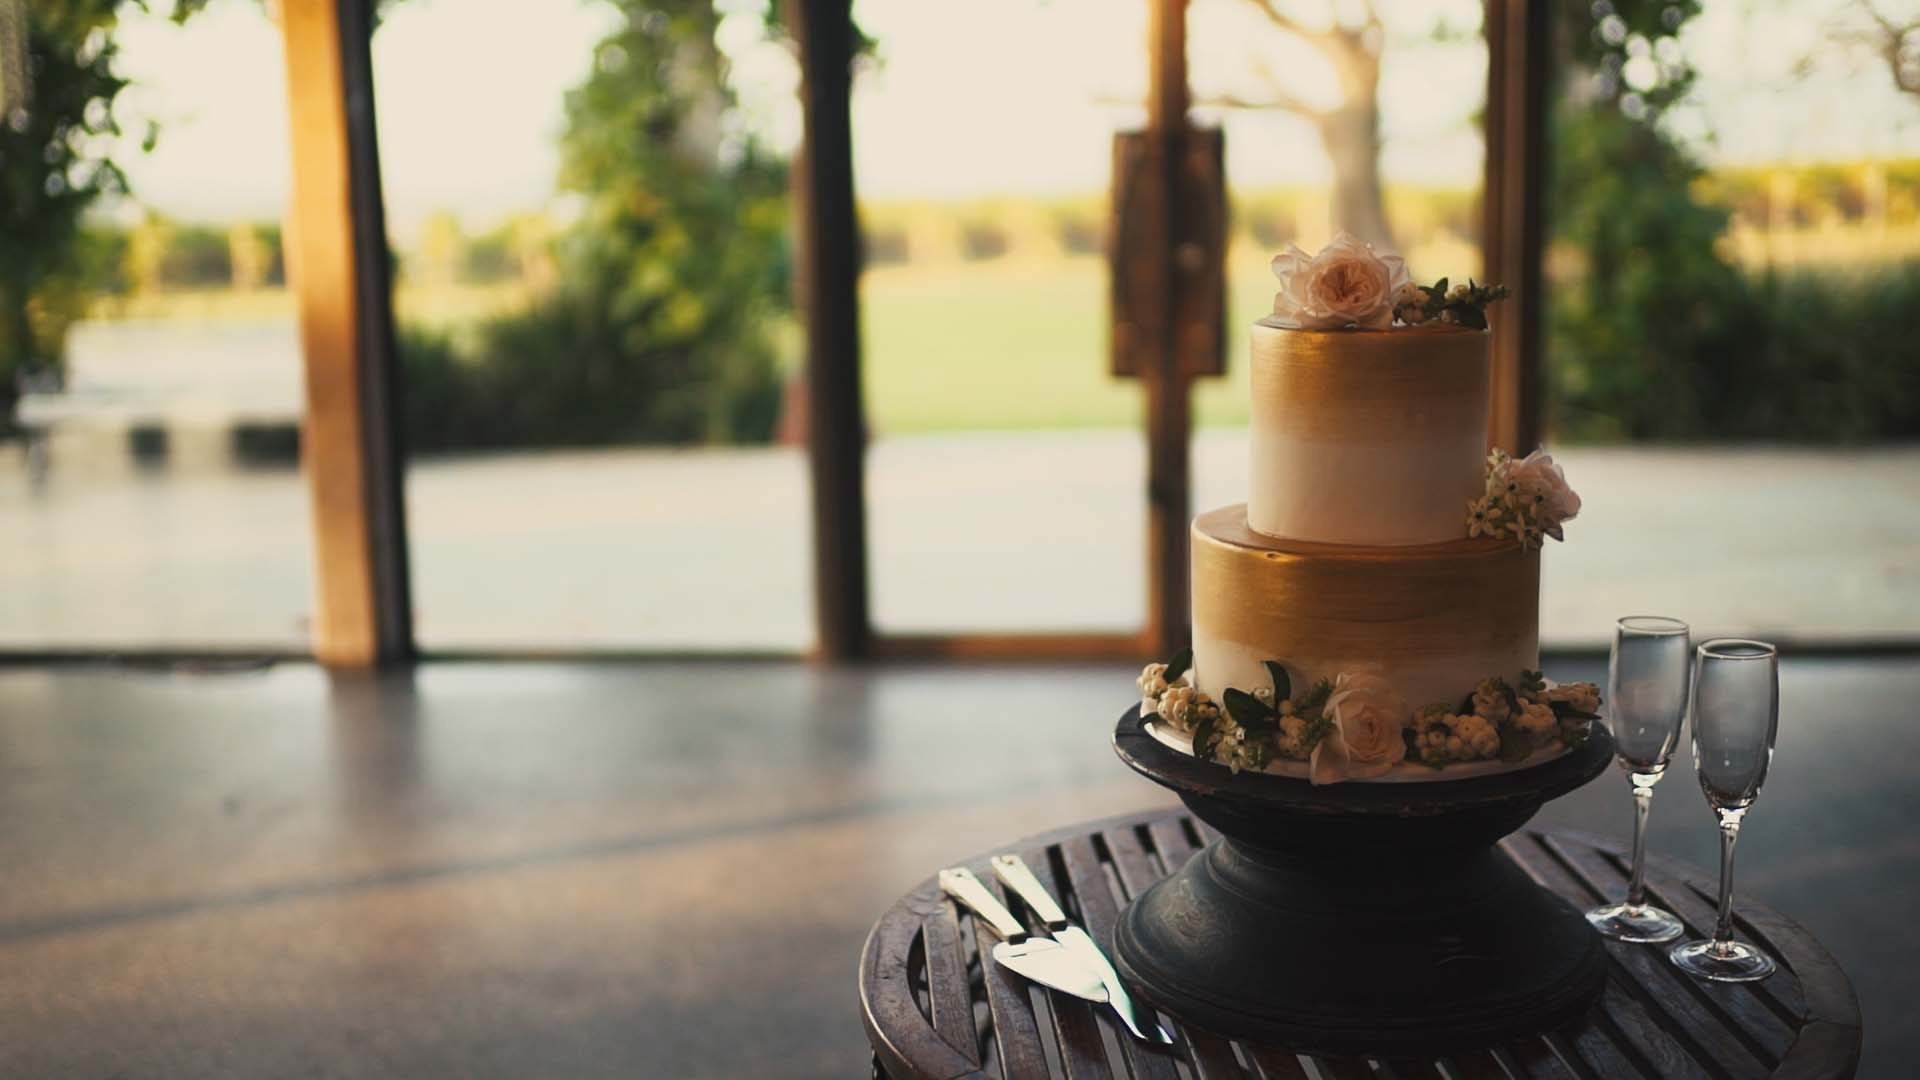 scott and tiani wedding videography melbourne